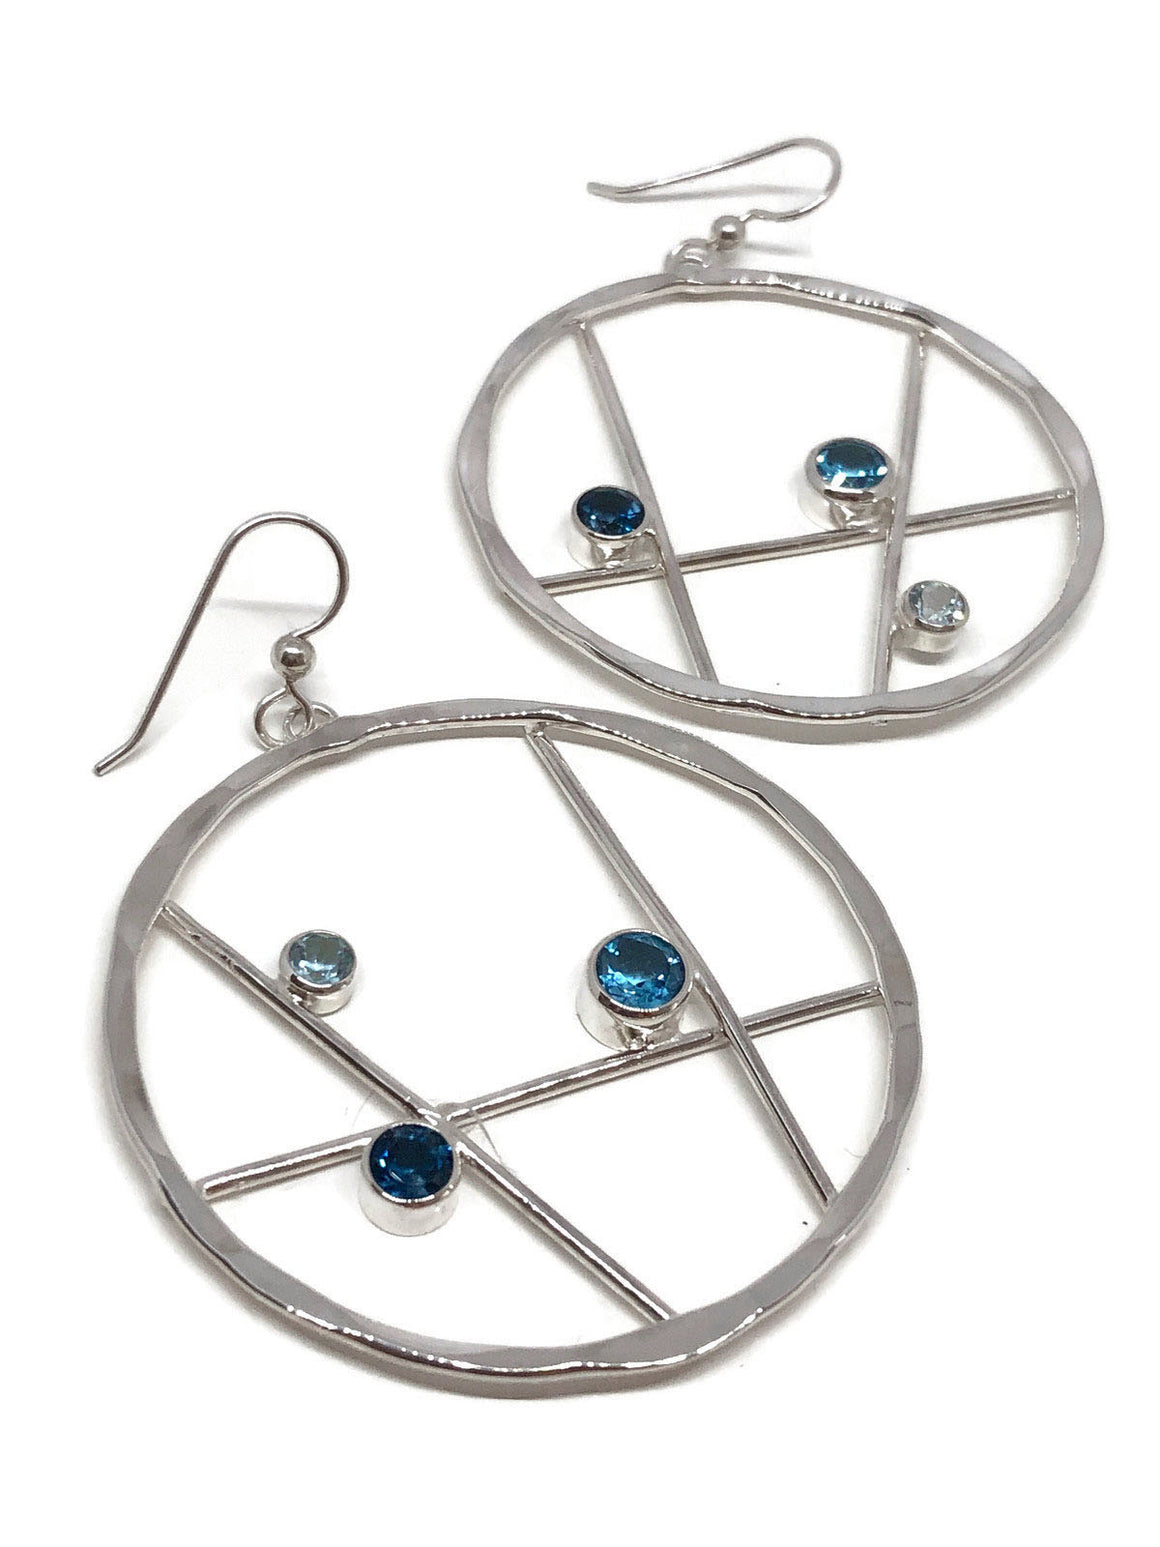 Blue Topaz Hoop Earrings Hammered Silver